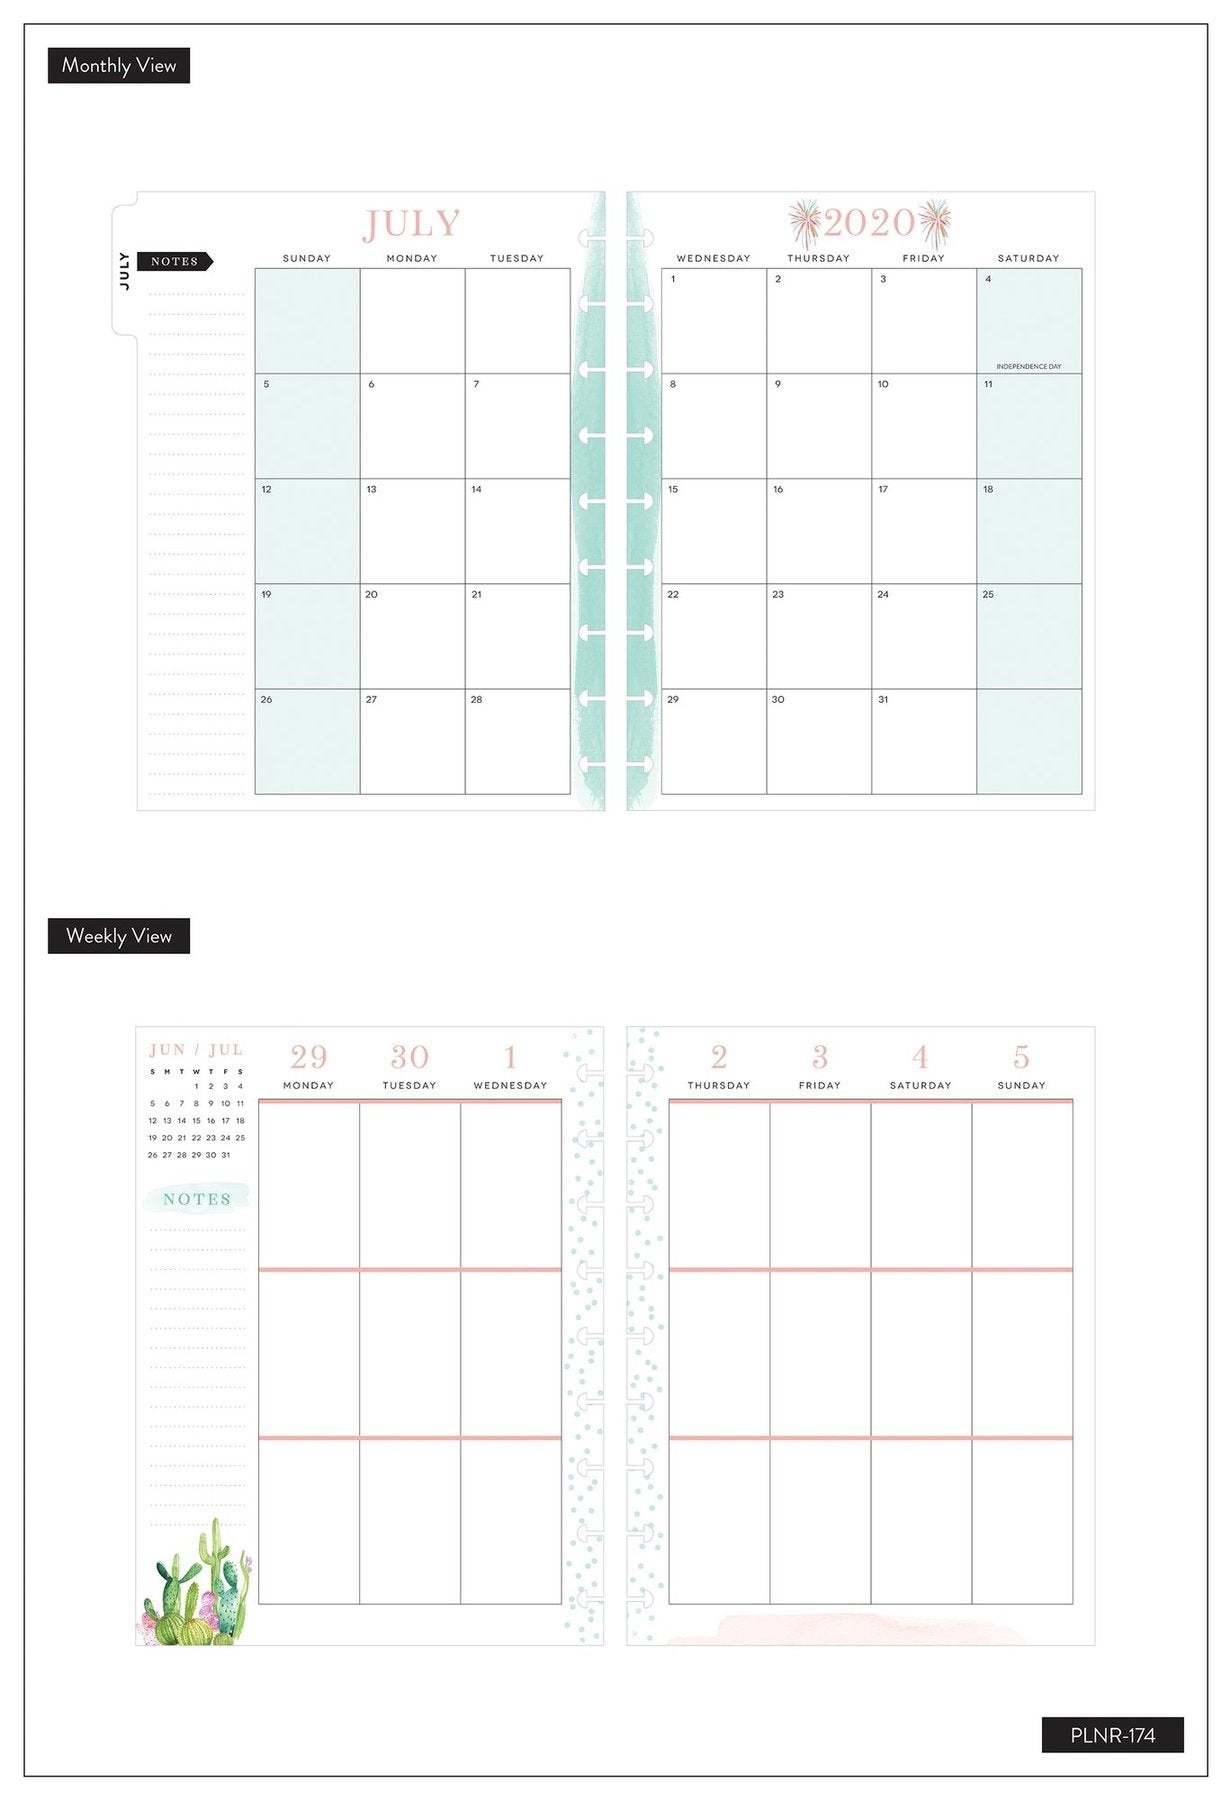 Agenda Happy Planner Clásica Vertical - RongRong Kind Women - 18 Meses 2020-2021